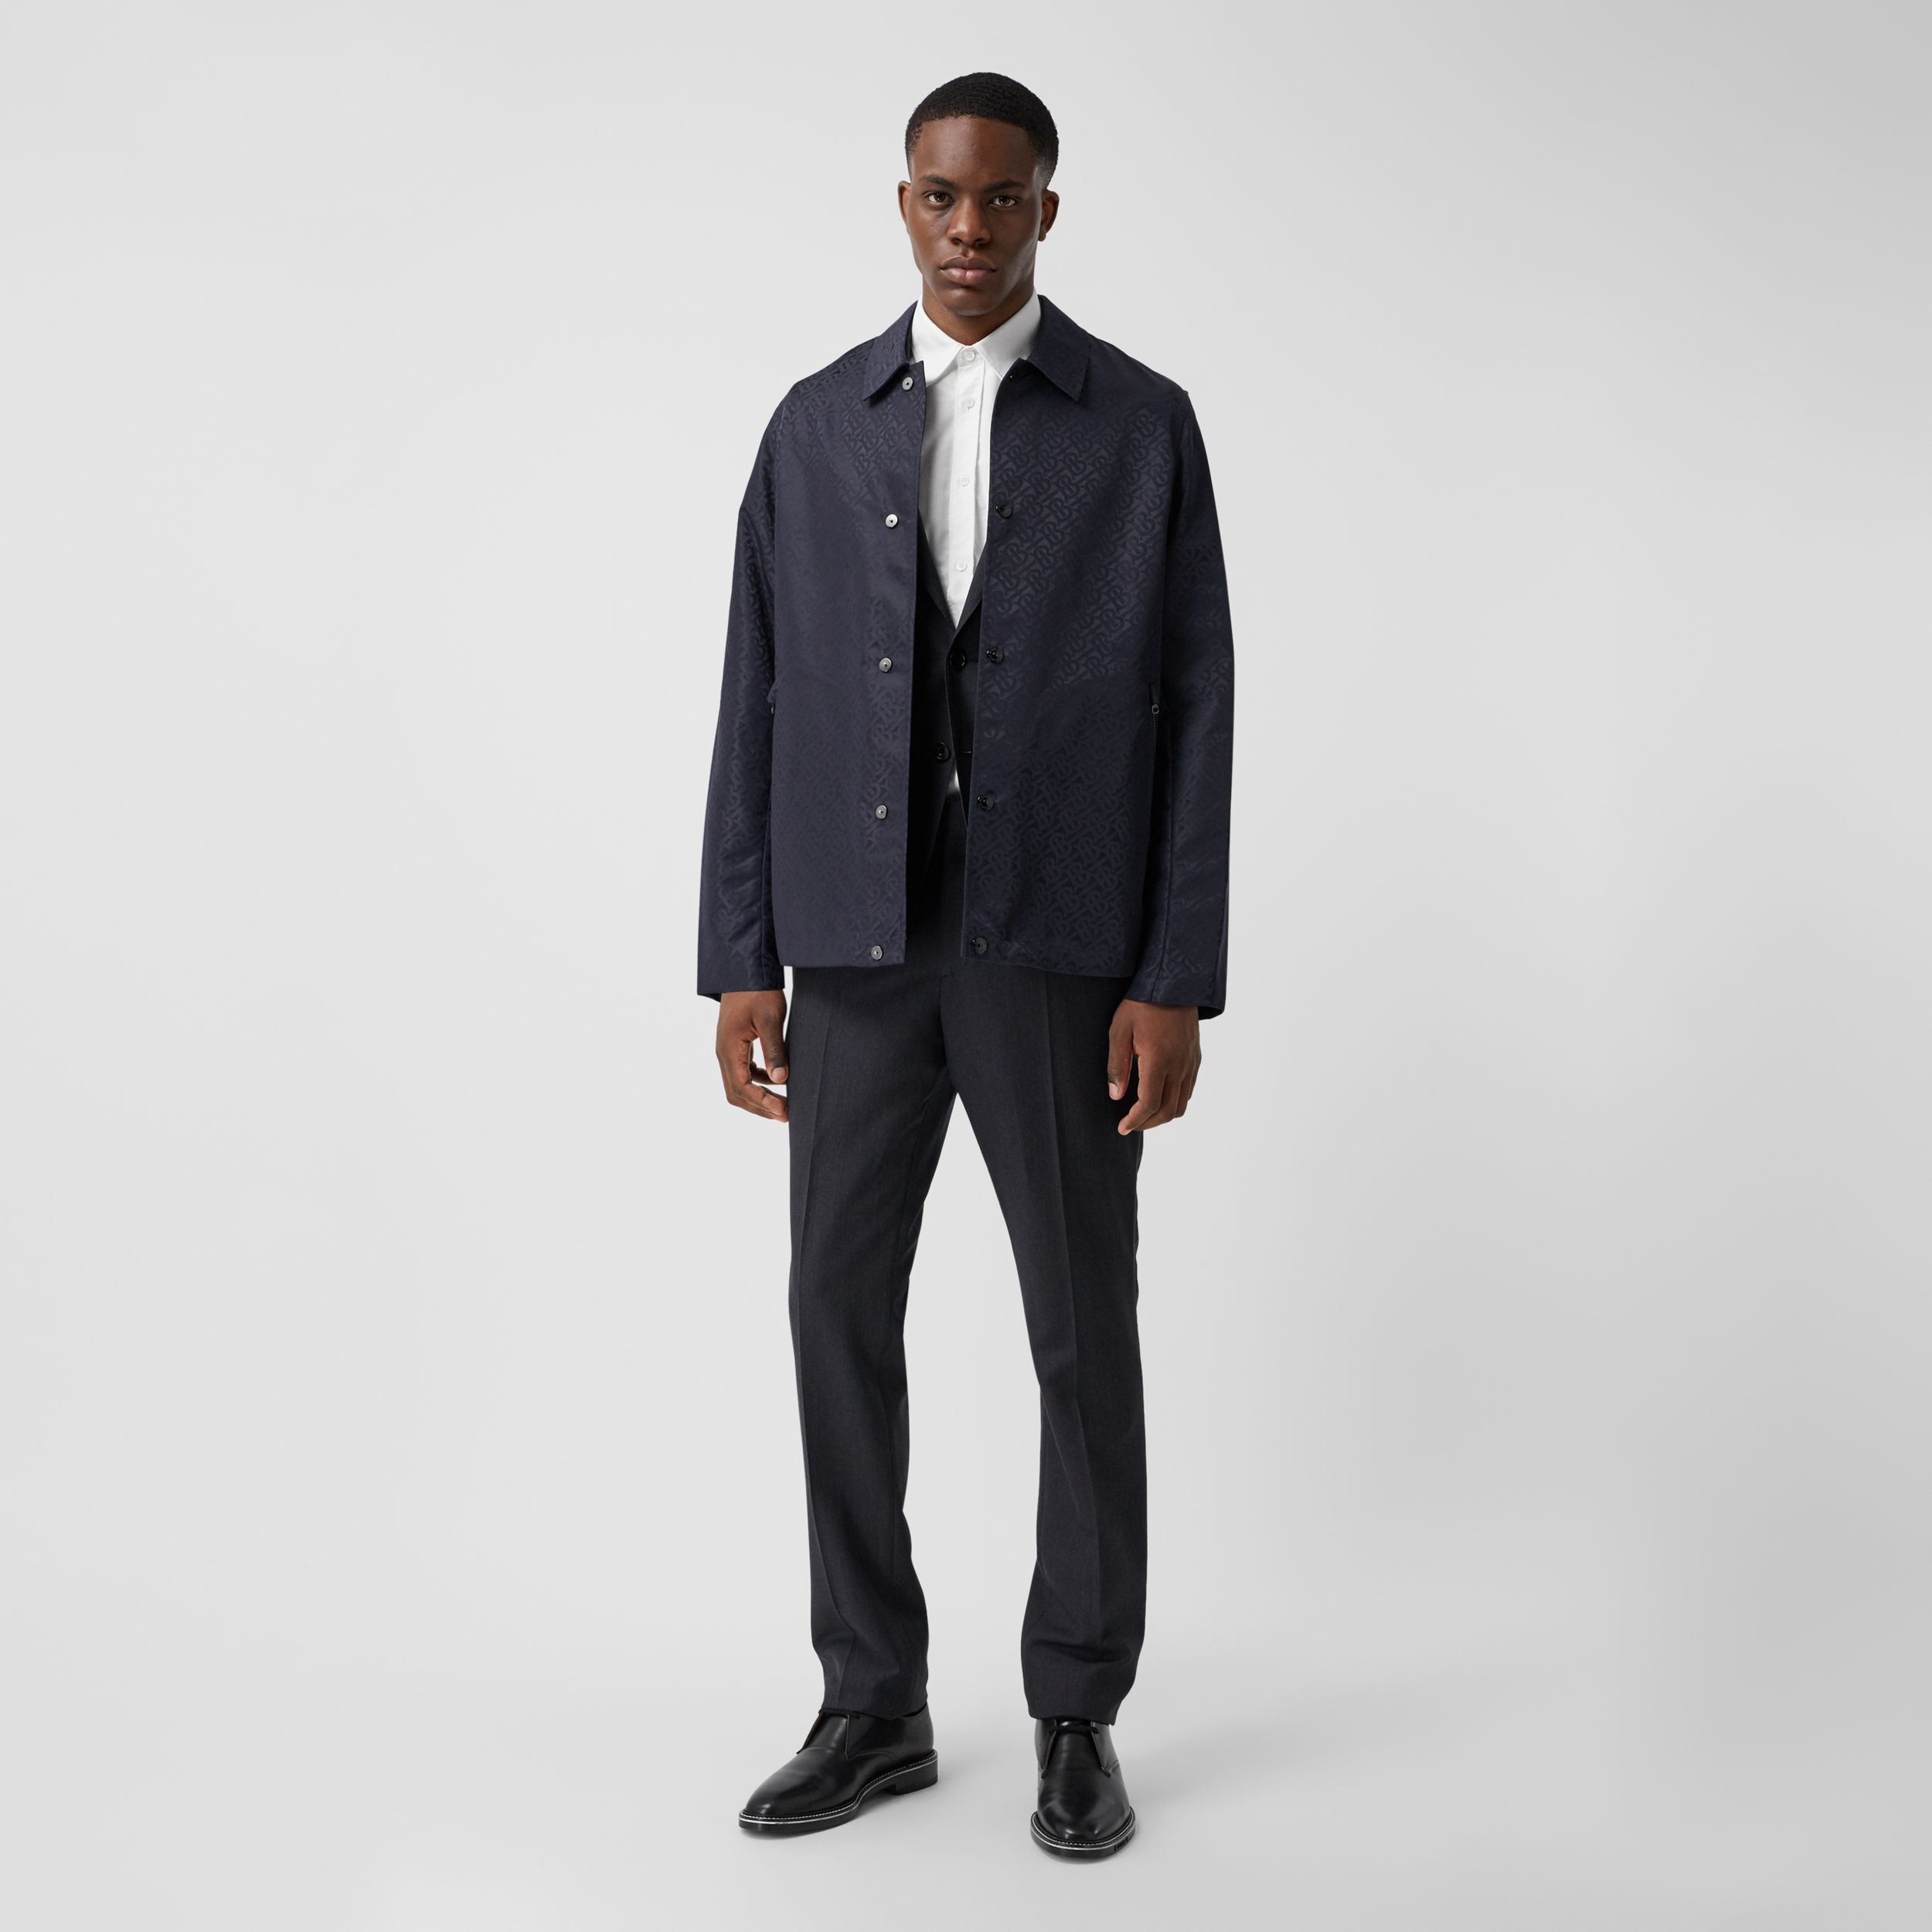 Monogram ECONYL® Jacket in Navy - Men | Burberry Canada - 1